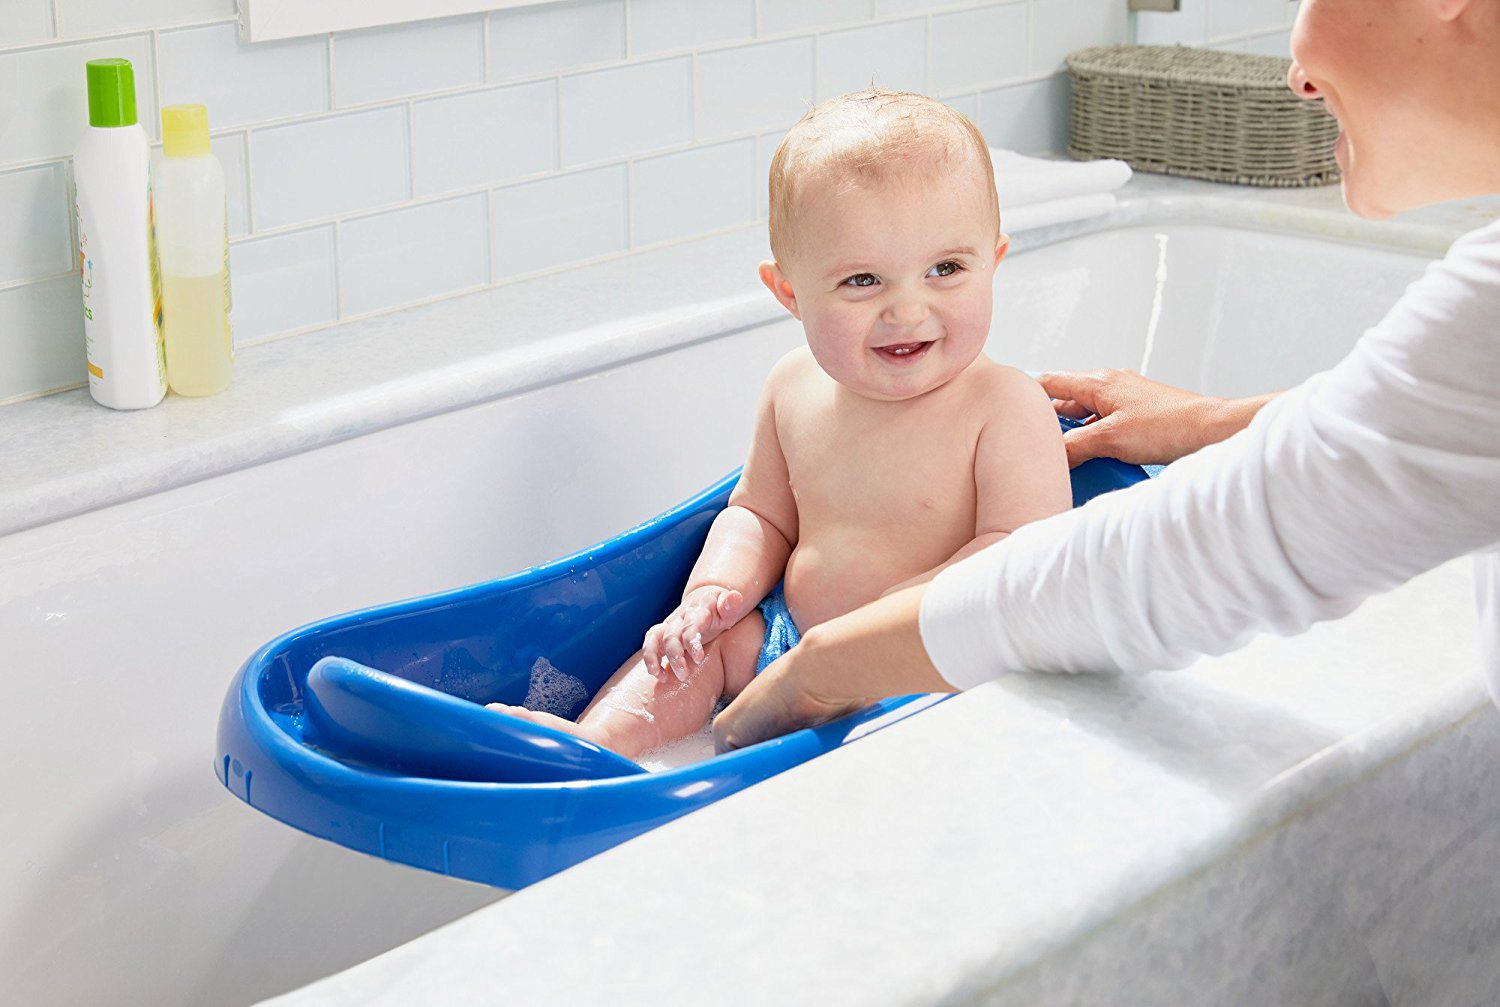 The 8 Best Baby Bathtubs to Buy in 2018